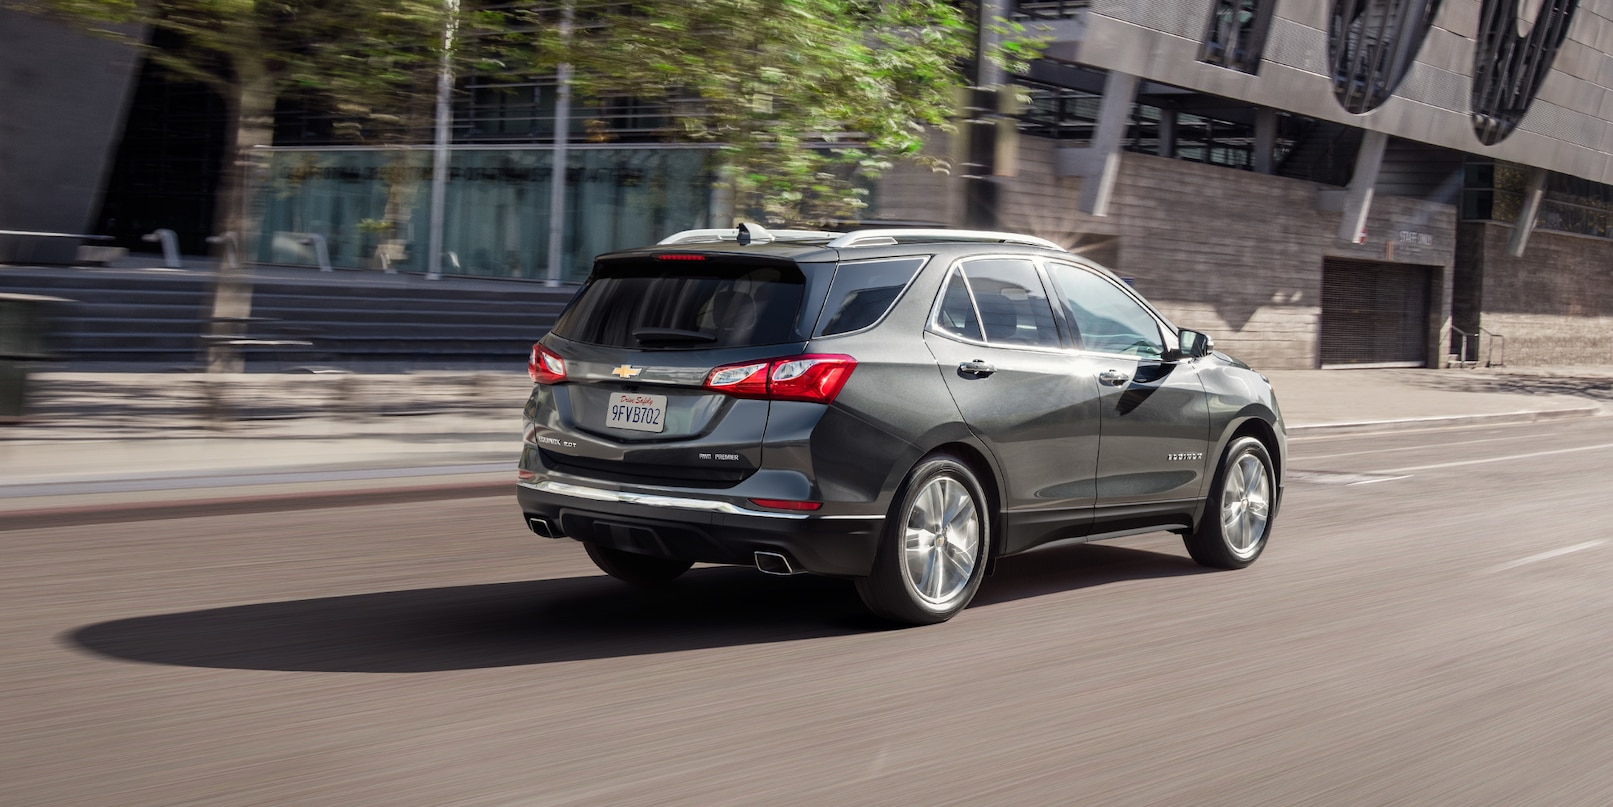 2019 Chevrolet Equinox For Sale In Sylvania Oh Dave White Chevrolet